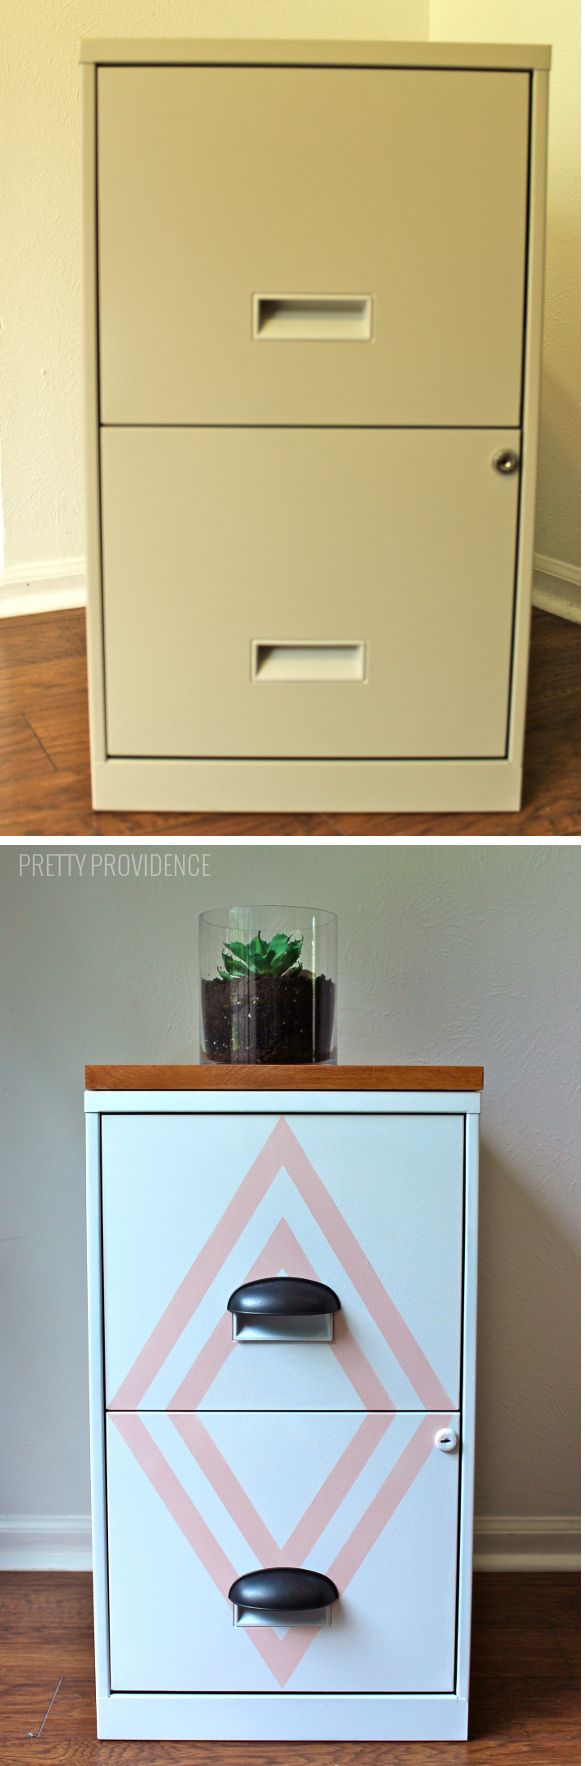 File Cabinet Paint How To Cover A File Cabinet Using Spray Paint Wallpaper Paste